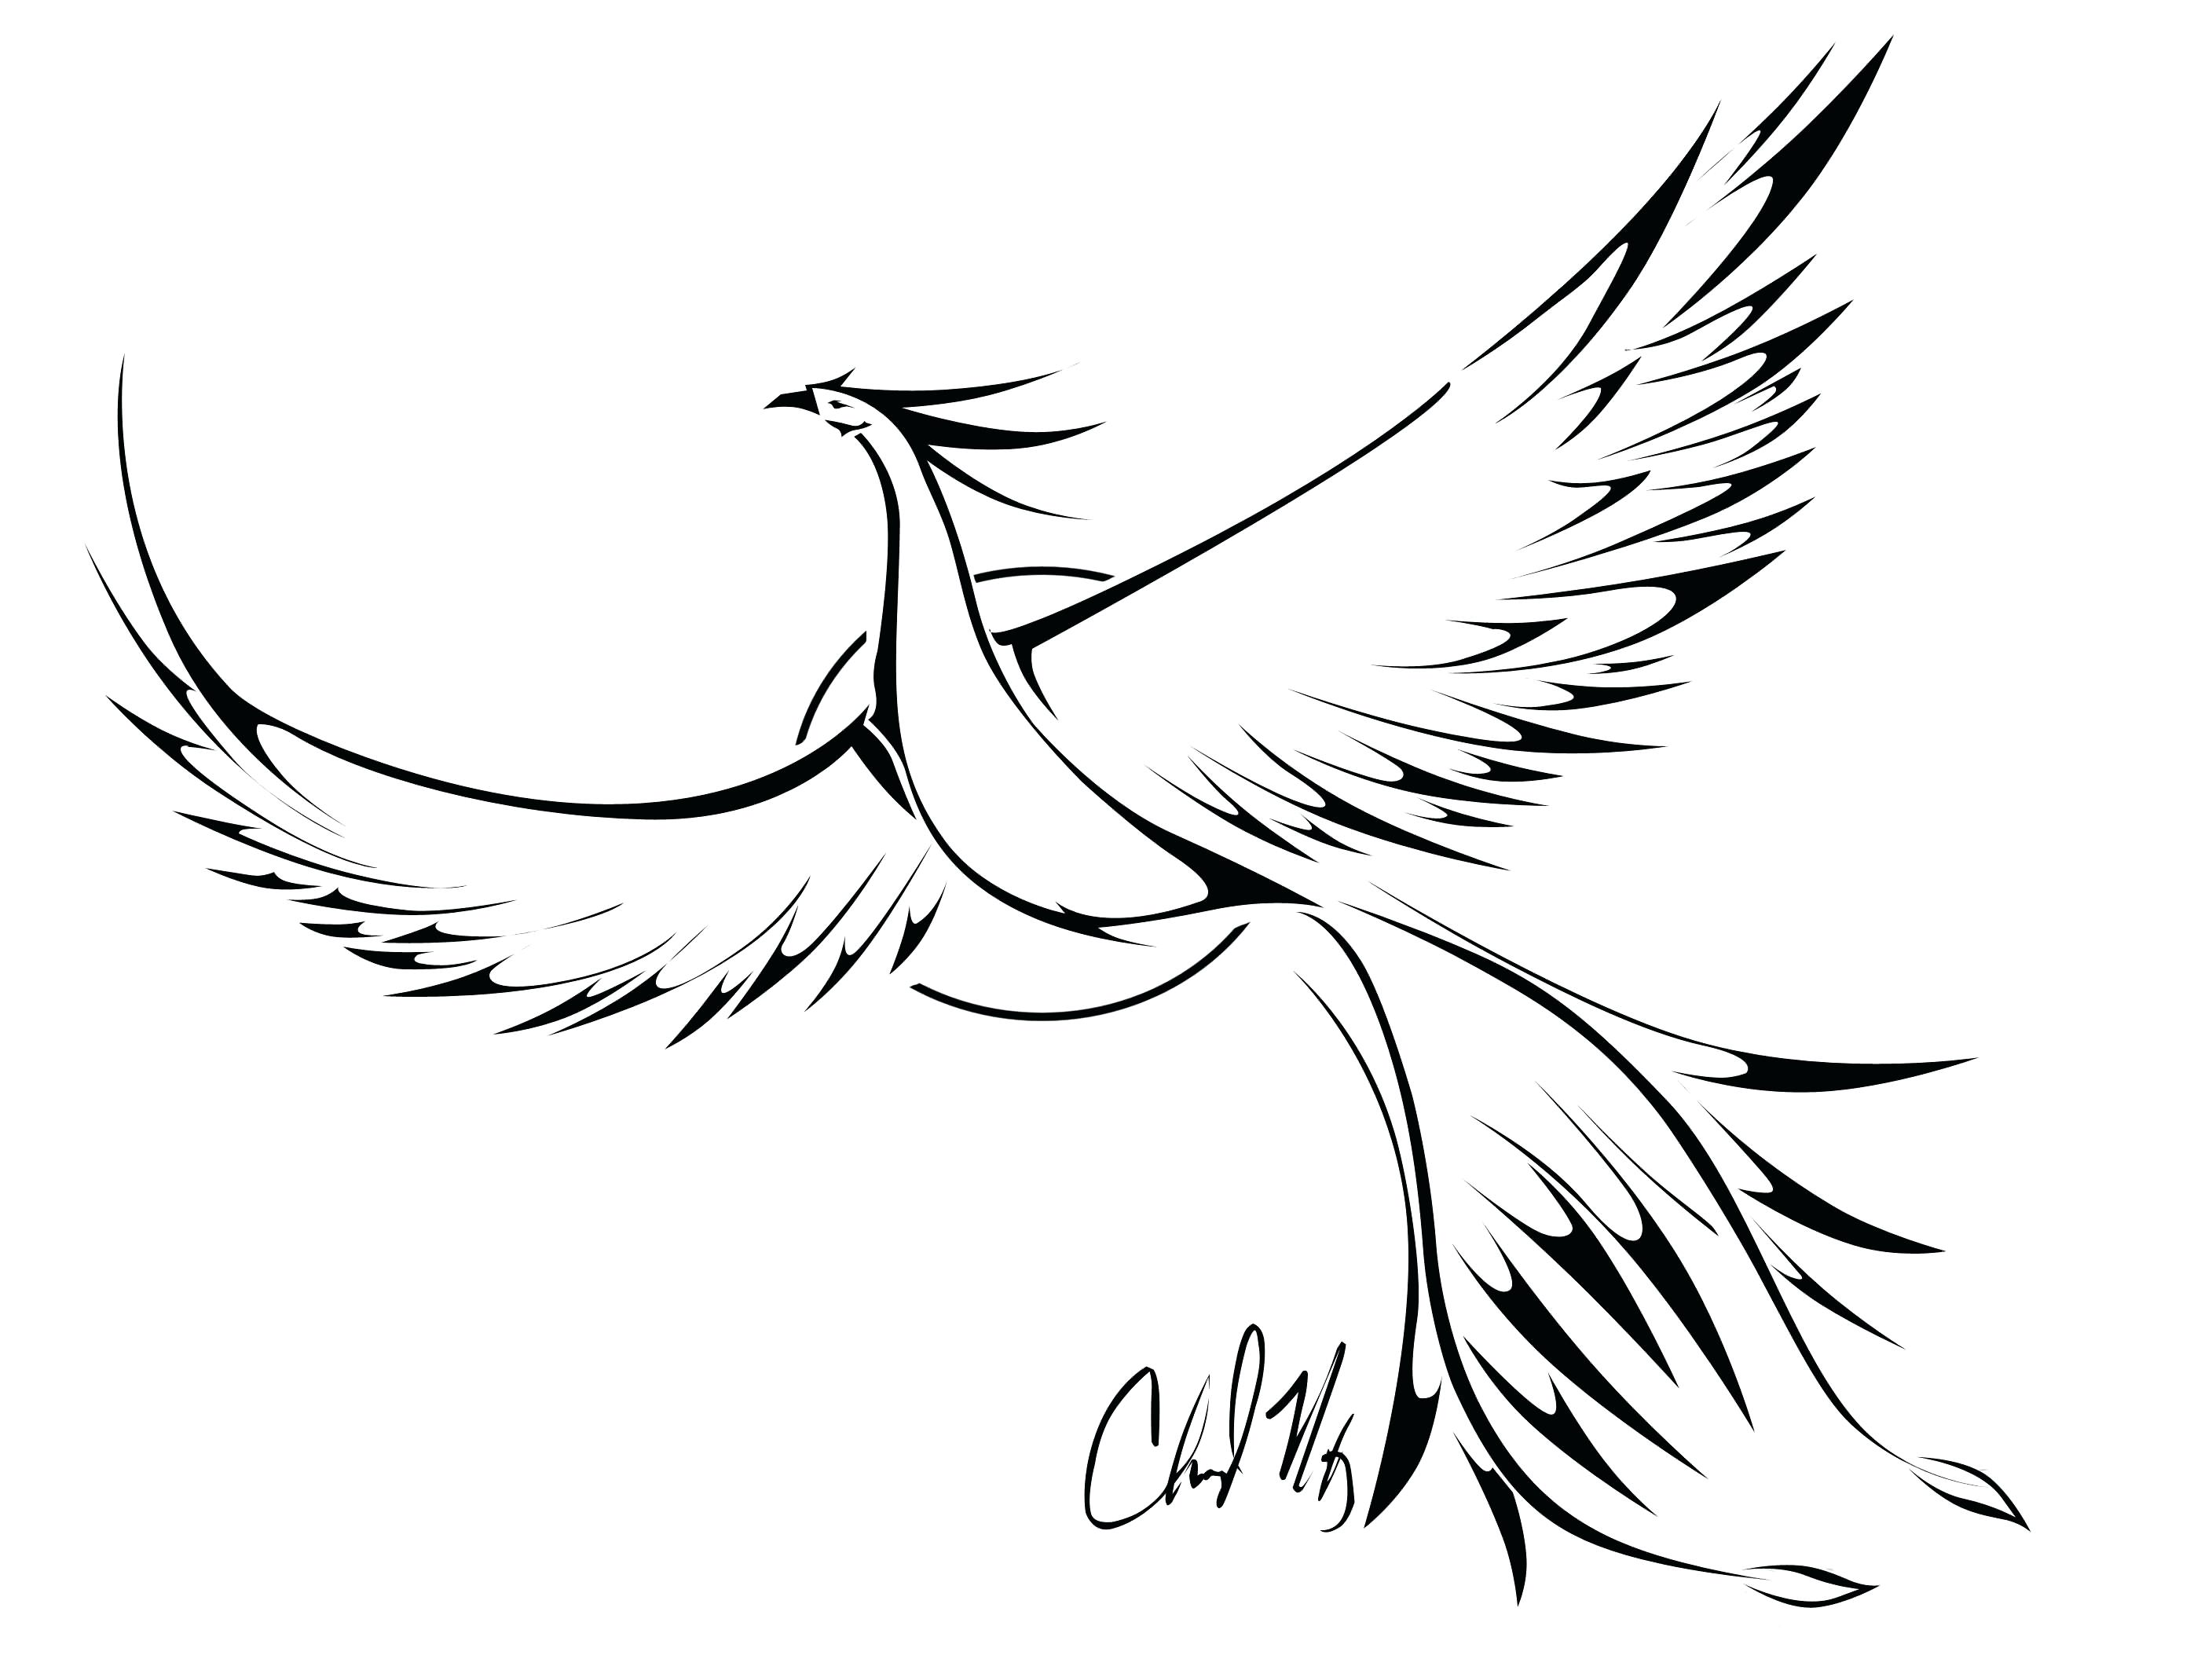 2816x2112 Outline Flying Bird And Sun Tattoo Design Swallow Designs On Hand